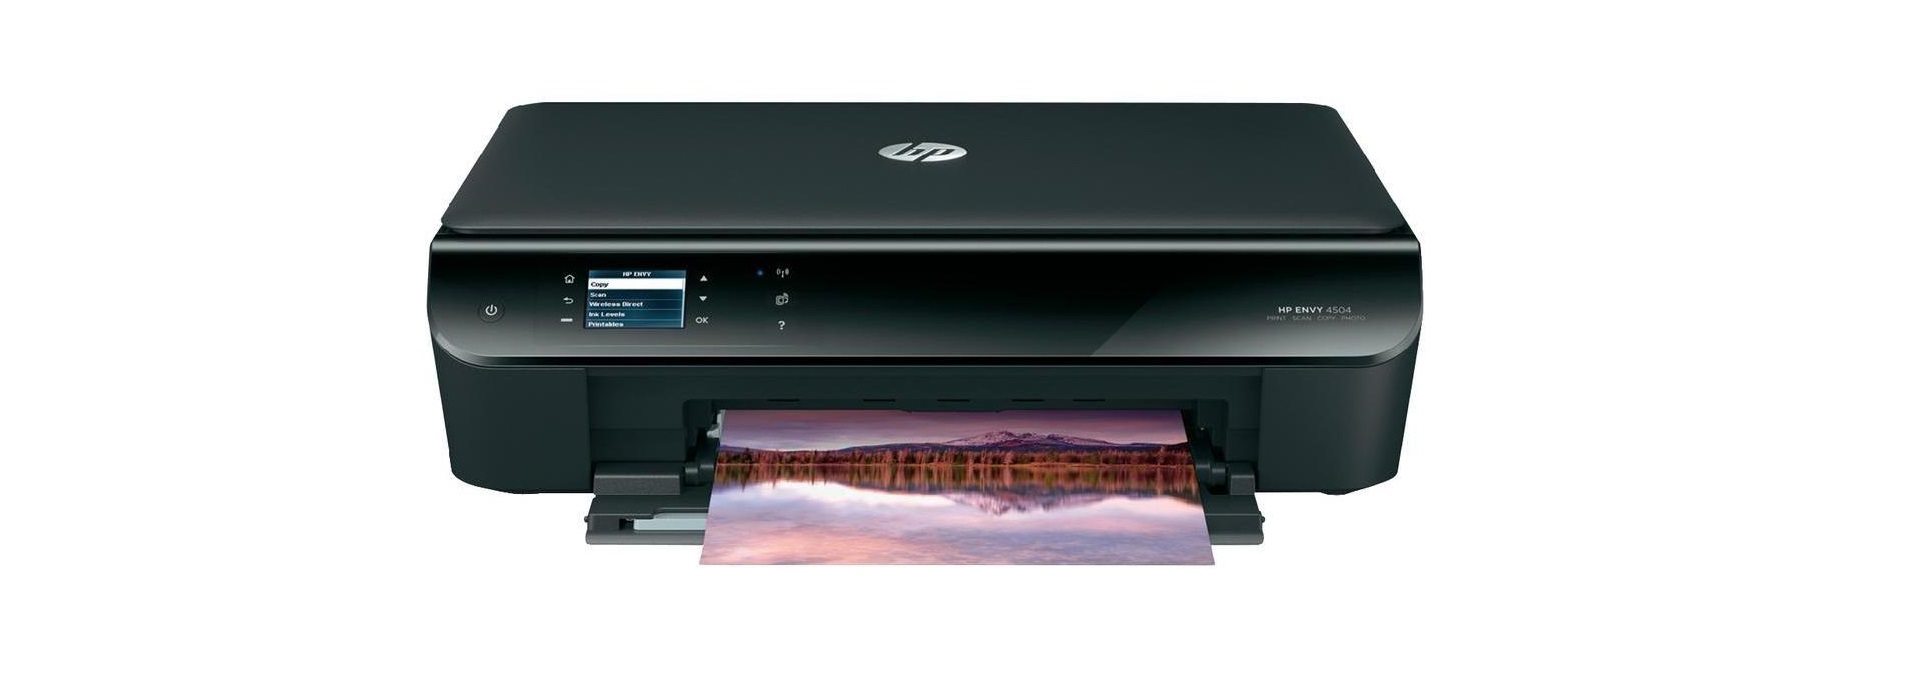 HP 4500 Serie All In One Printer